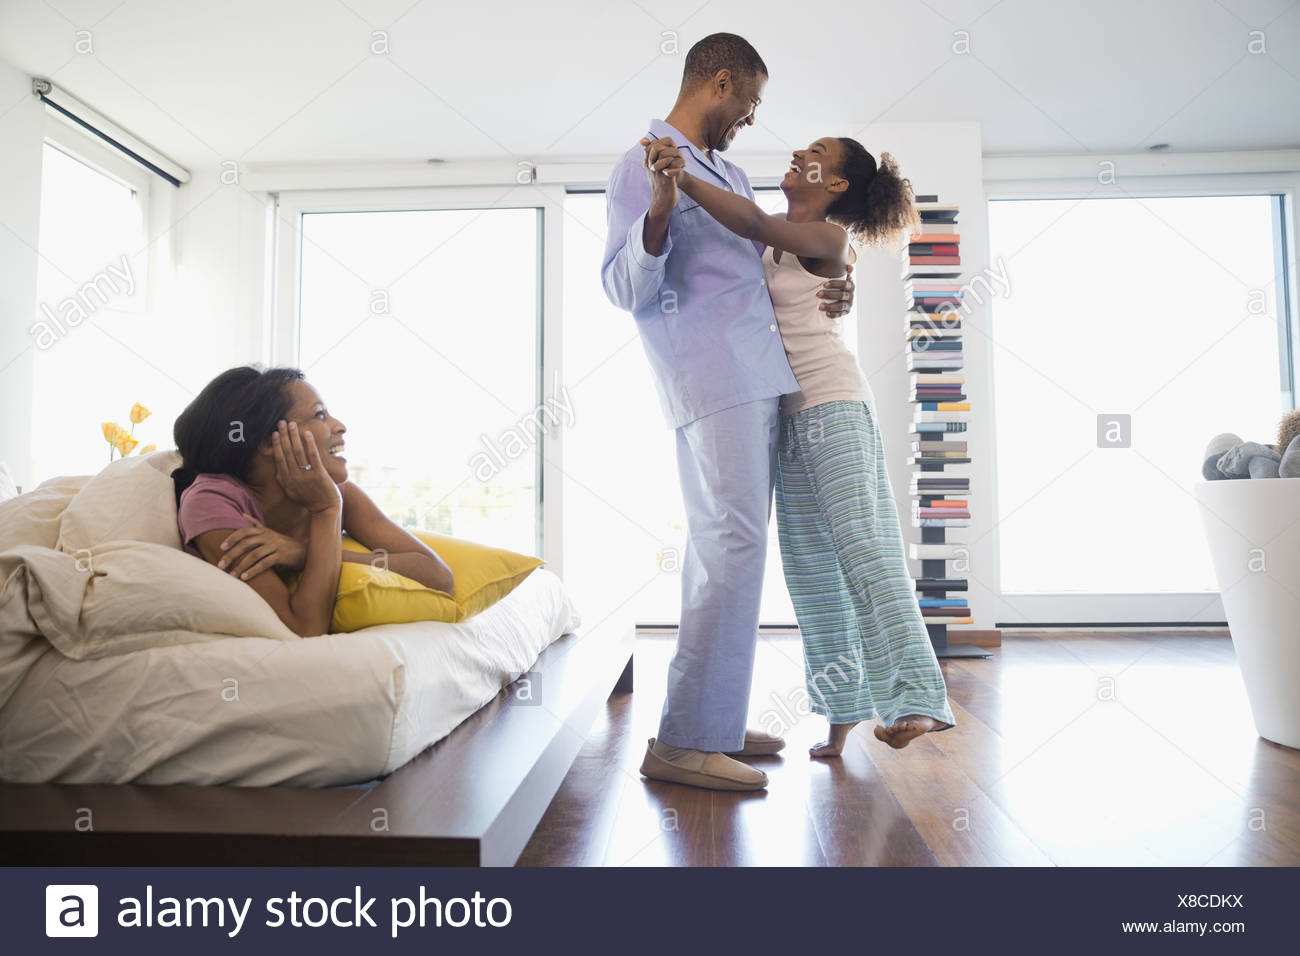 Father and daughter dancing in bedroom - Stock Image